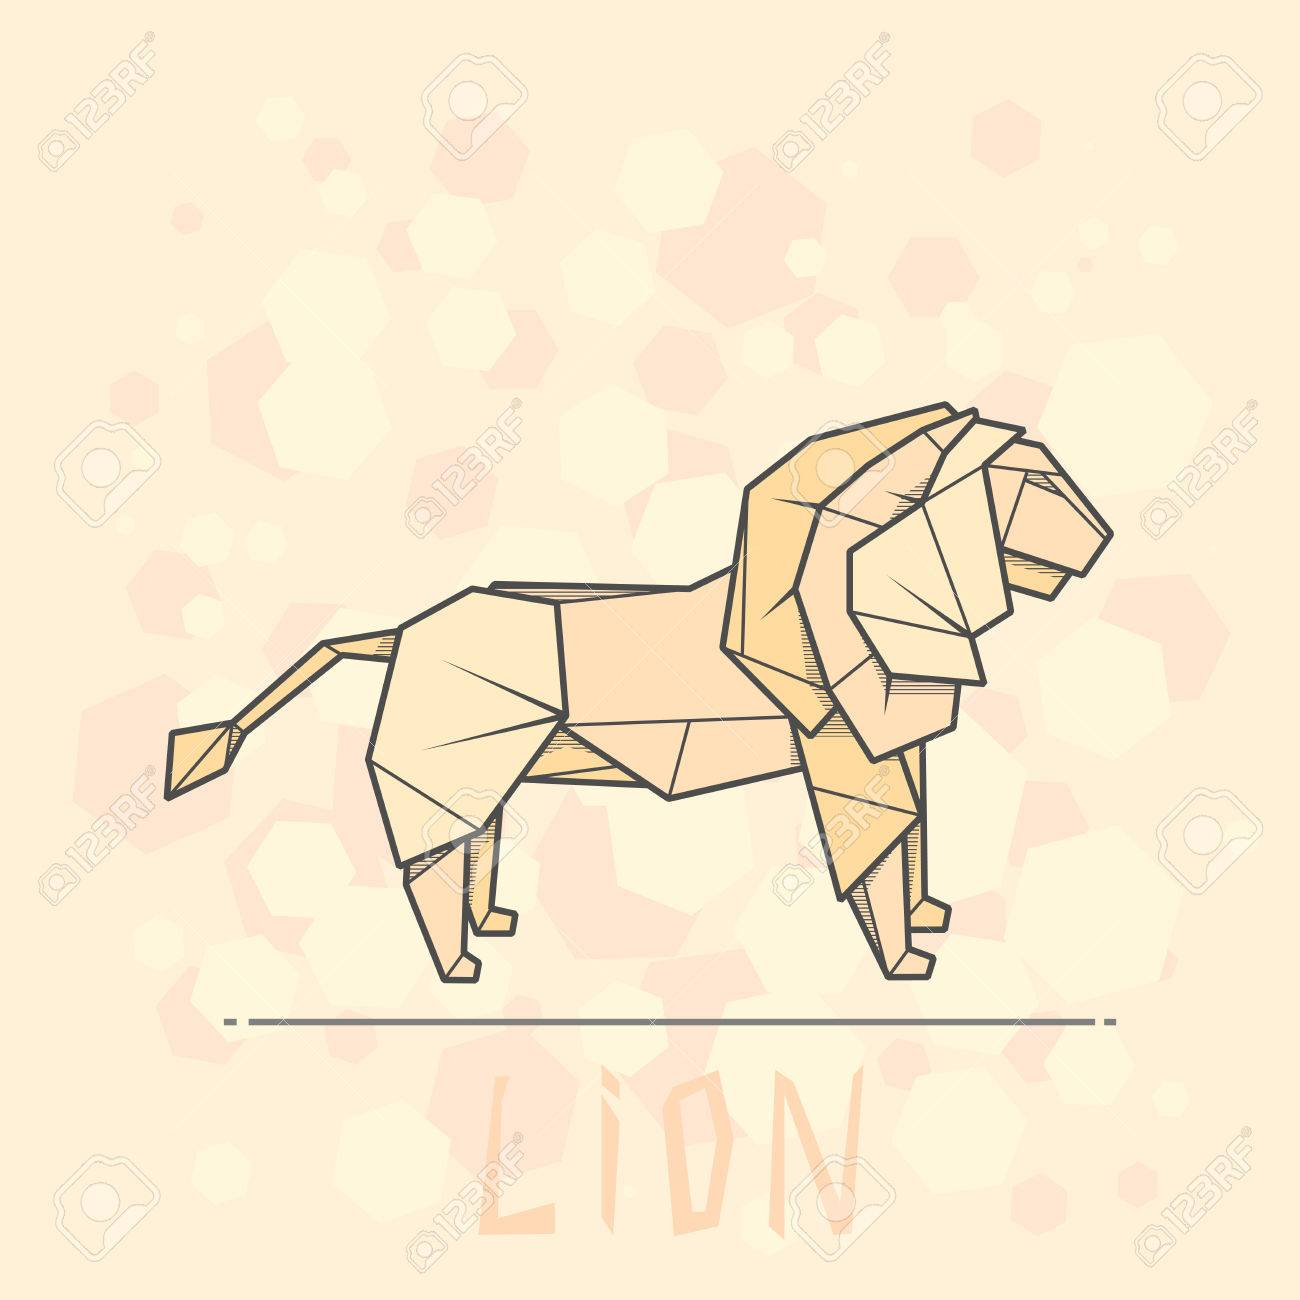 Simple Illustration Paper Origami Of Lion Stock Vector